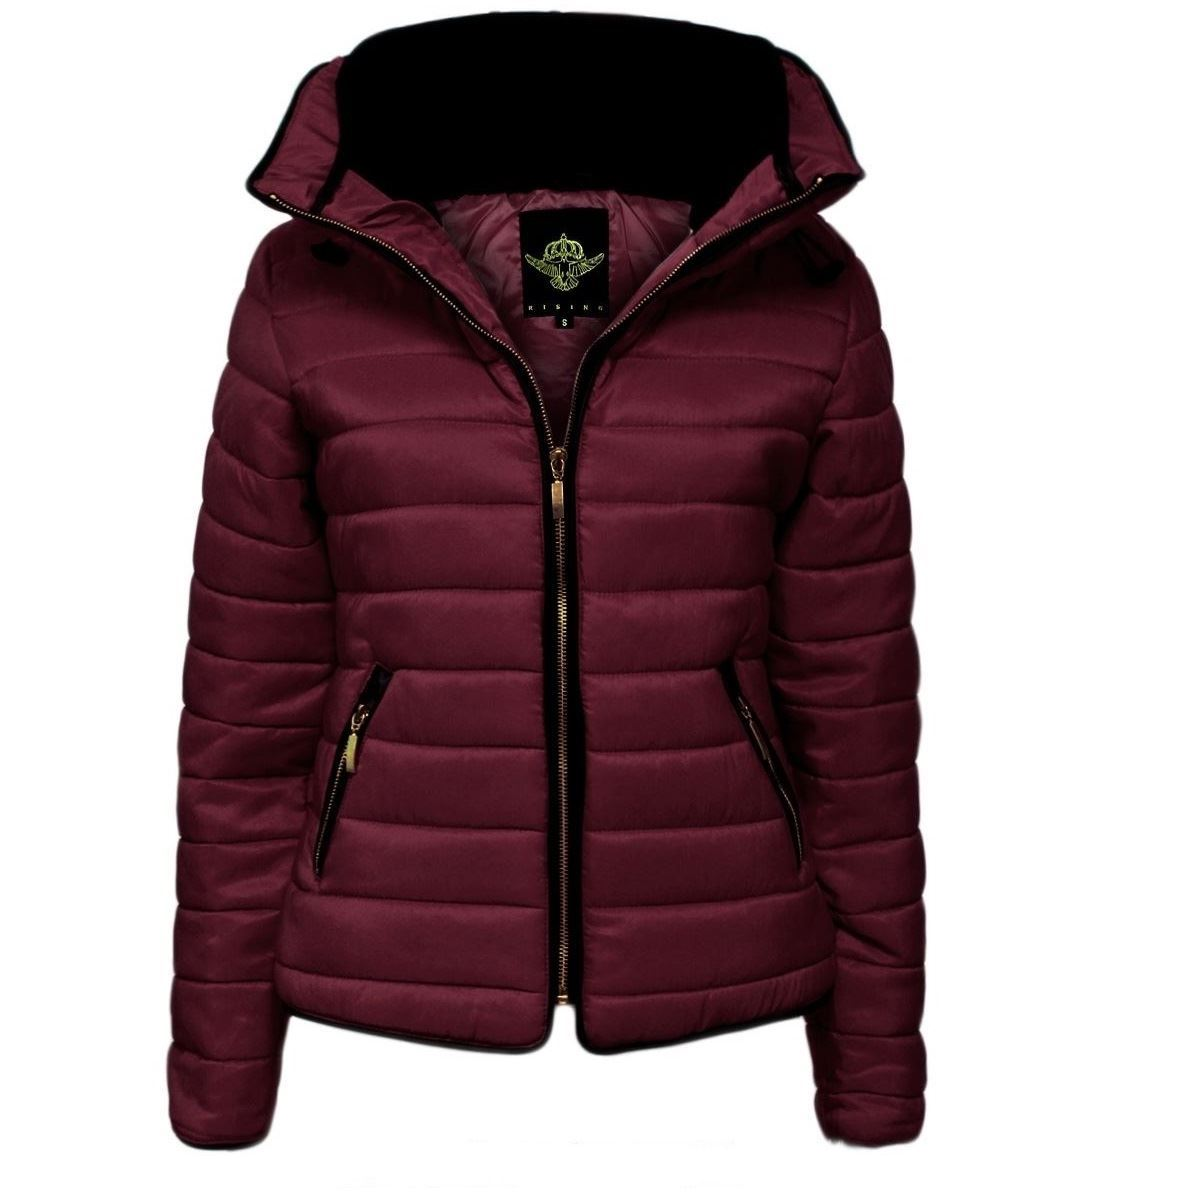 Ideal for layering over a basic tee, or for taking along on a trip, this puffer is a winter essential! With a front zip closure and hand pockets, this piece combines convenience with chic style.